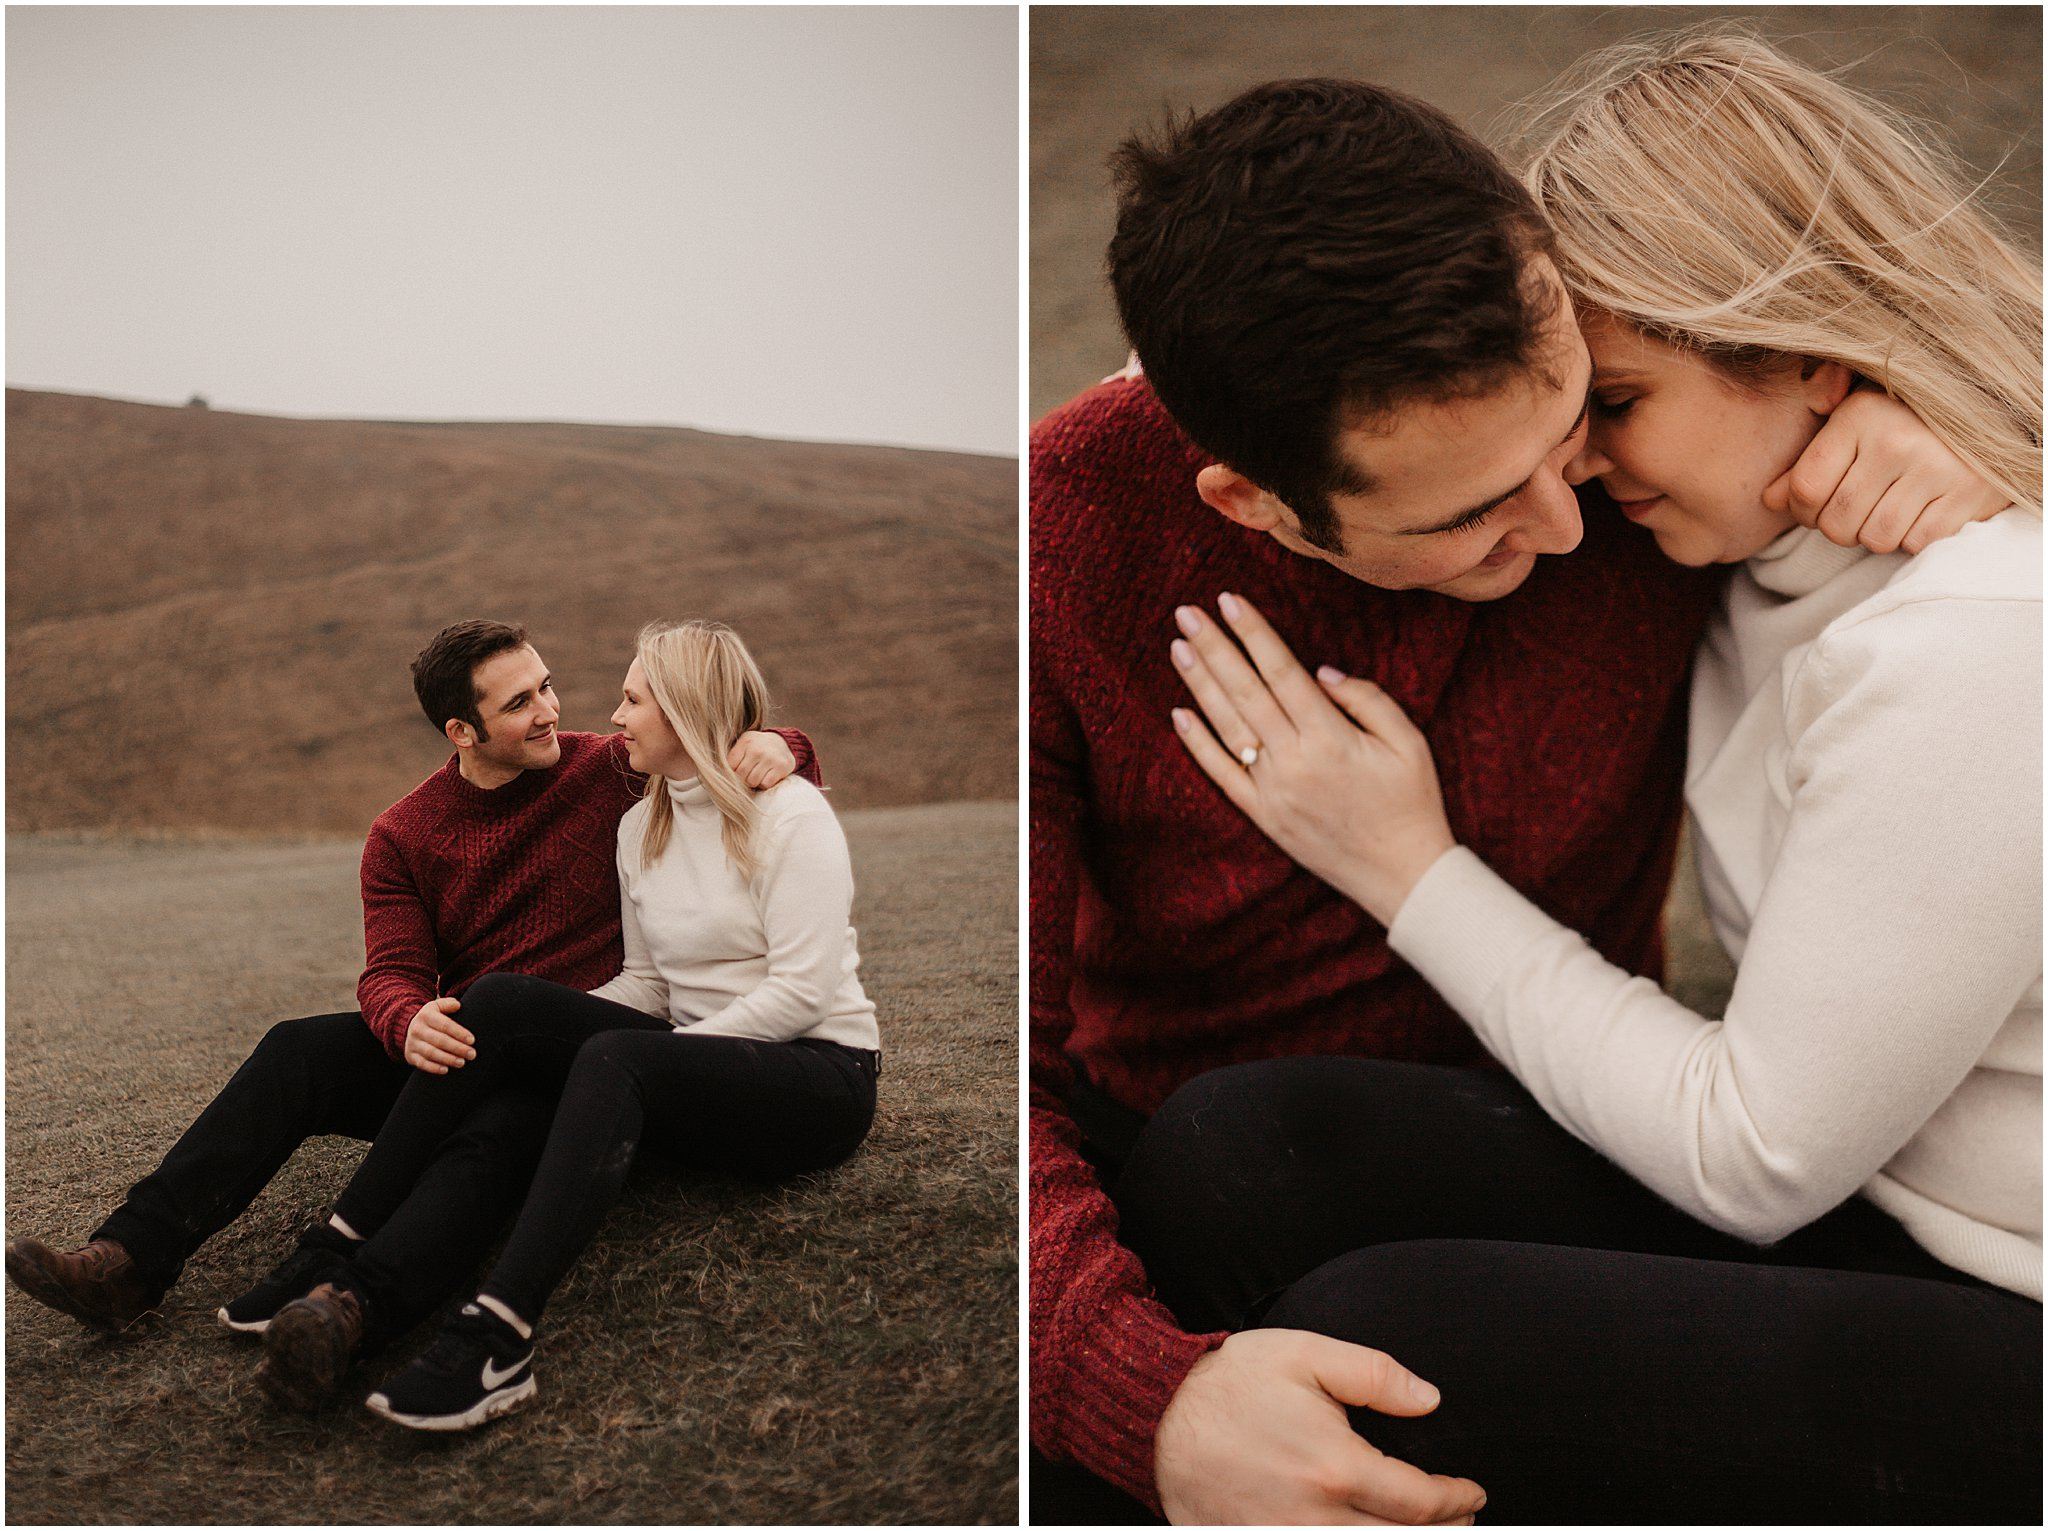 Mike & Charley_s Winter Engagement Shoot Wiltshire-103.jpg